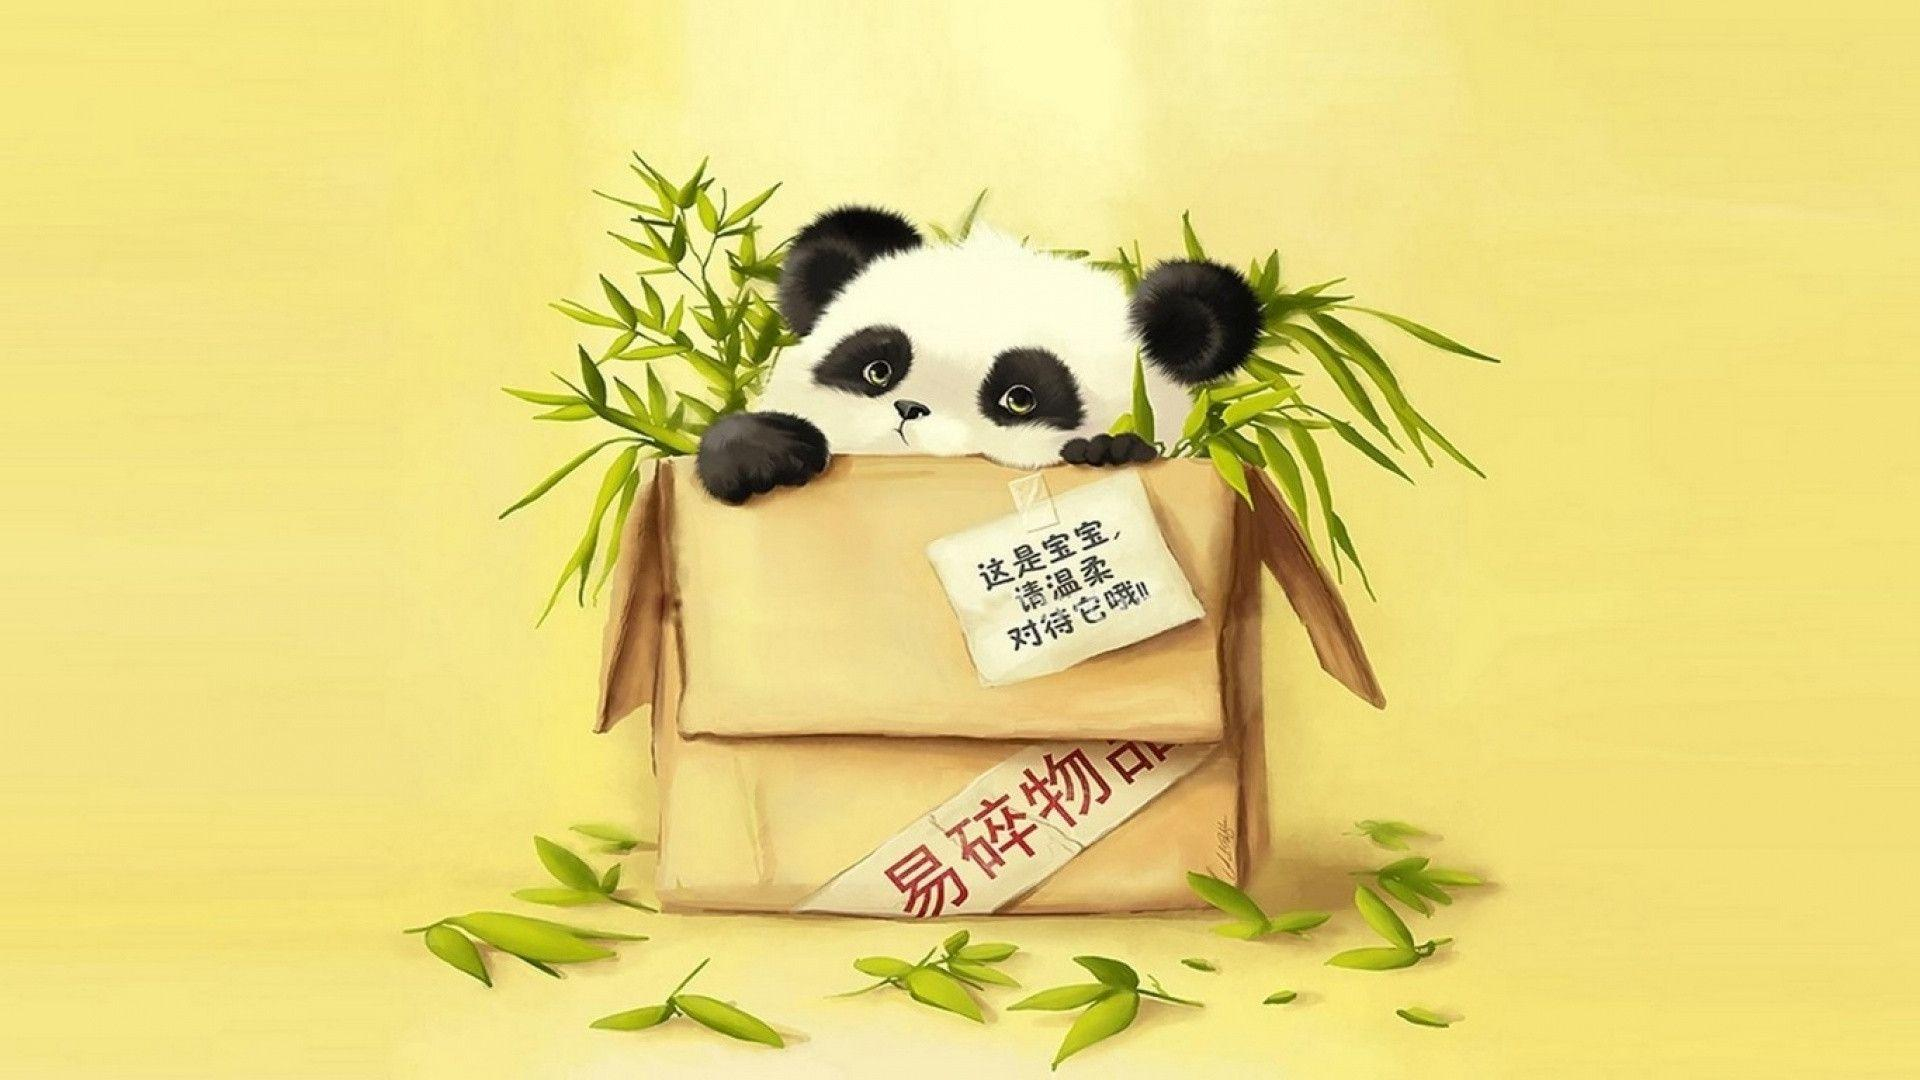 Funny Cartoon Panda Wallpaper